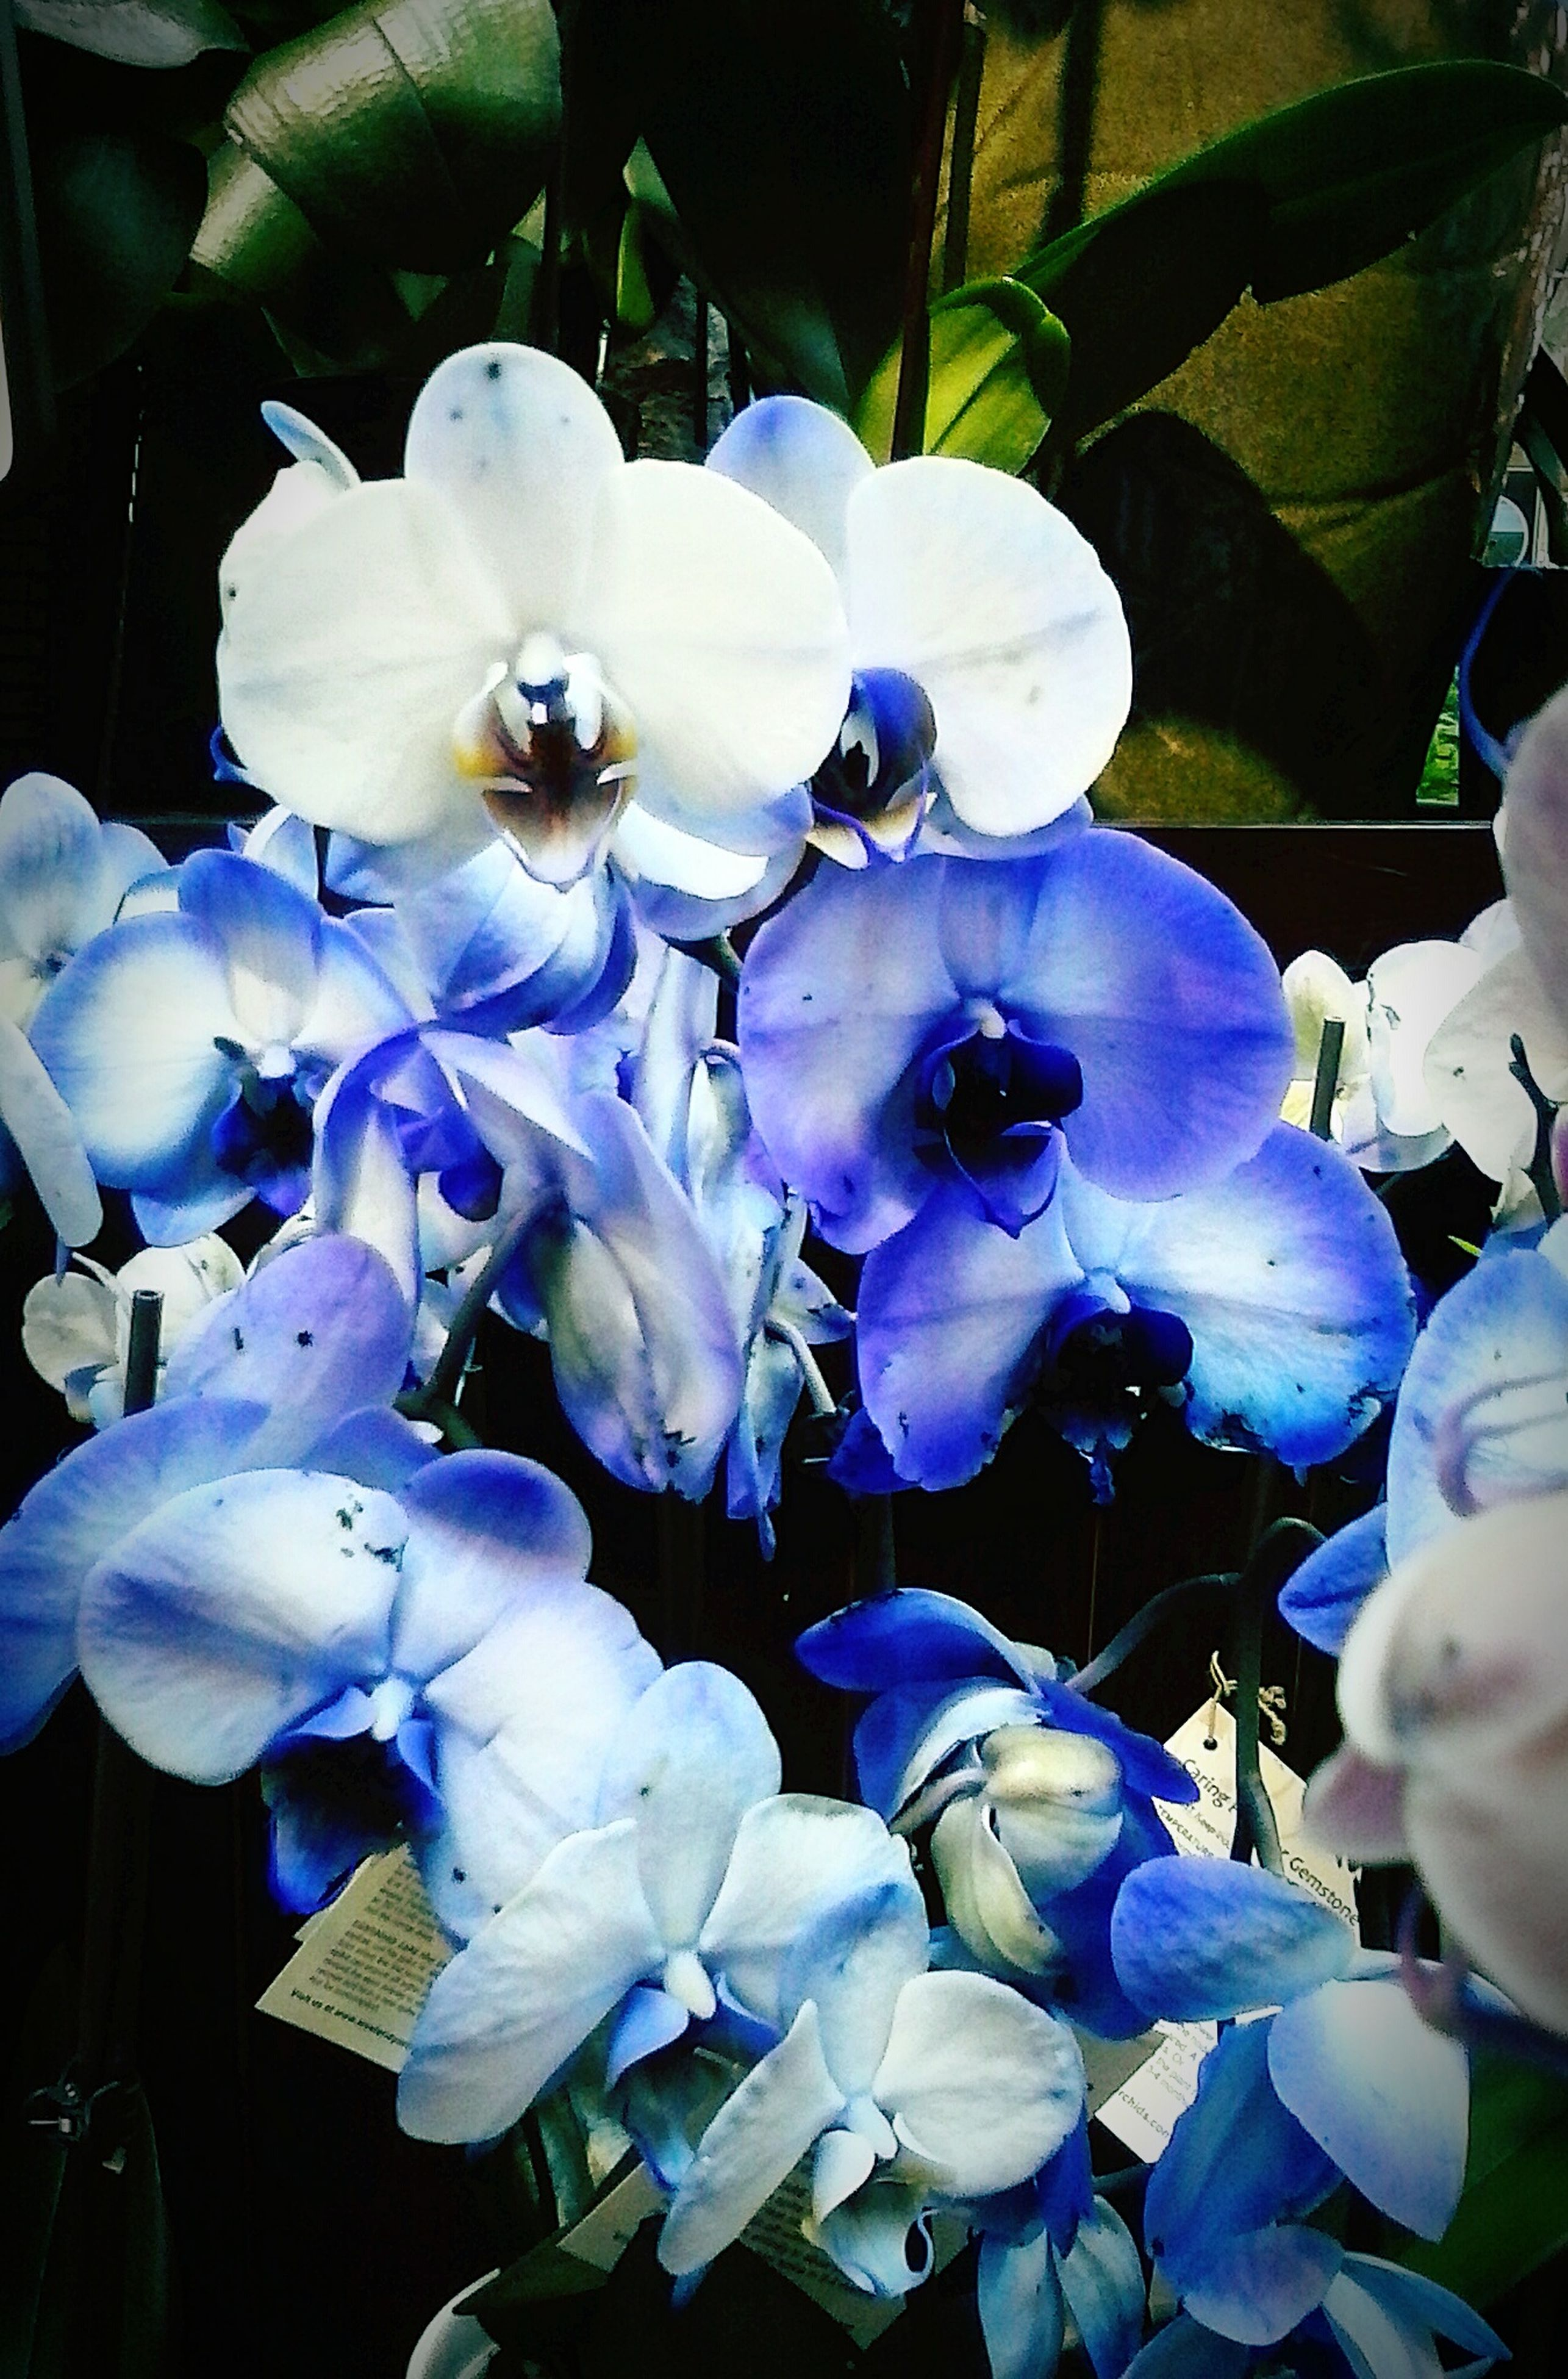 flower, petal, fragility, freshness, flower head, purple, growth, beauty in nature, close-up, orchid, blooming, hydrangea, nature, white color, plant, high angle view, focus on foreground, park - man made space, in bloom, blue